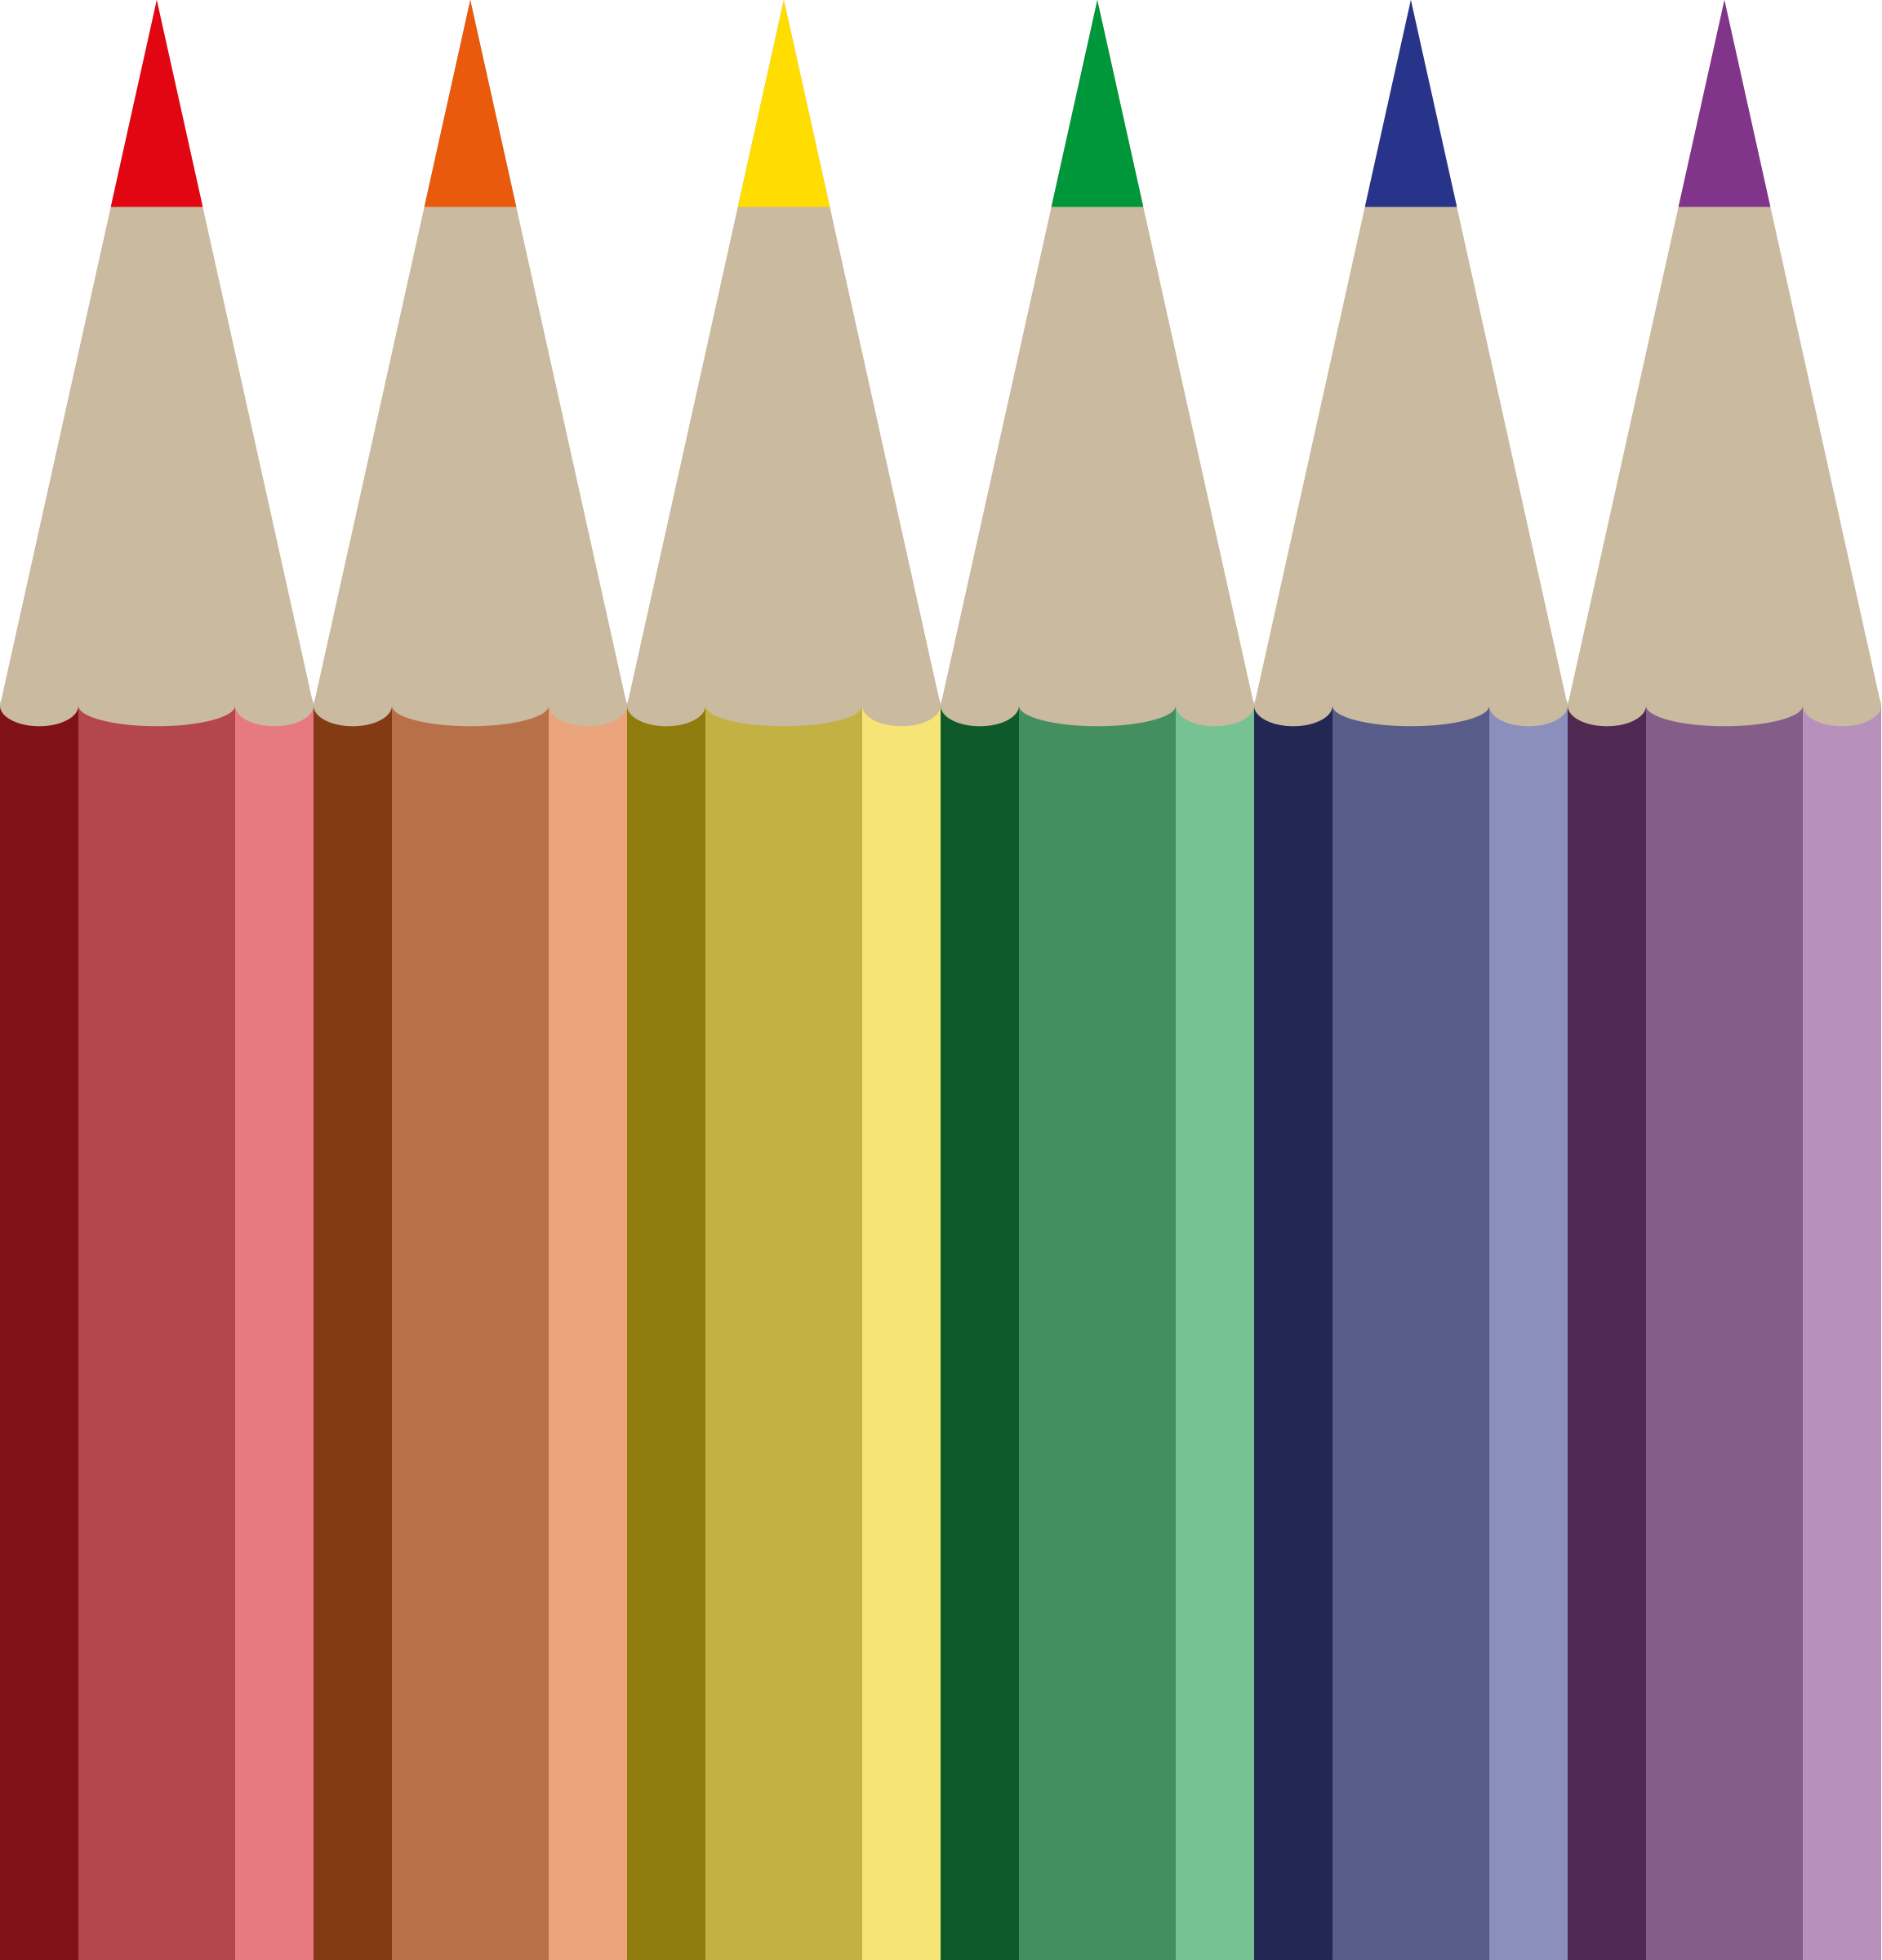 Crayons clipart colored pencil. Download and use png